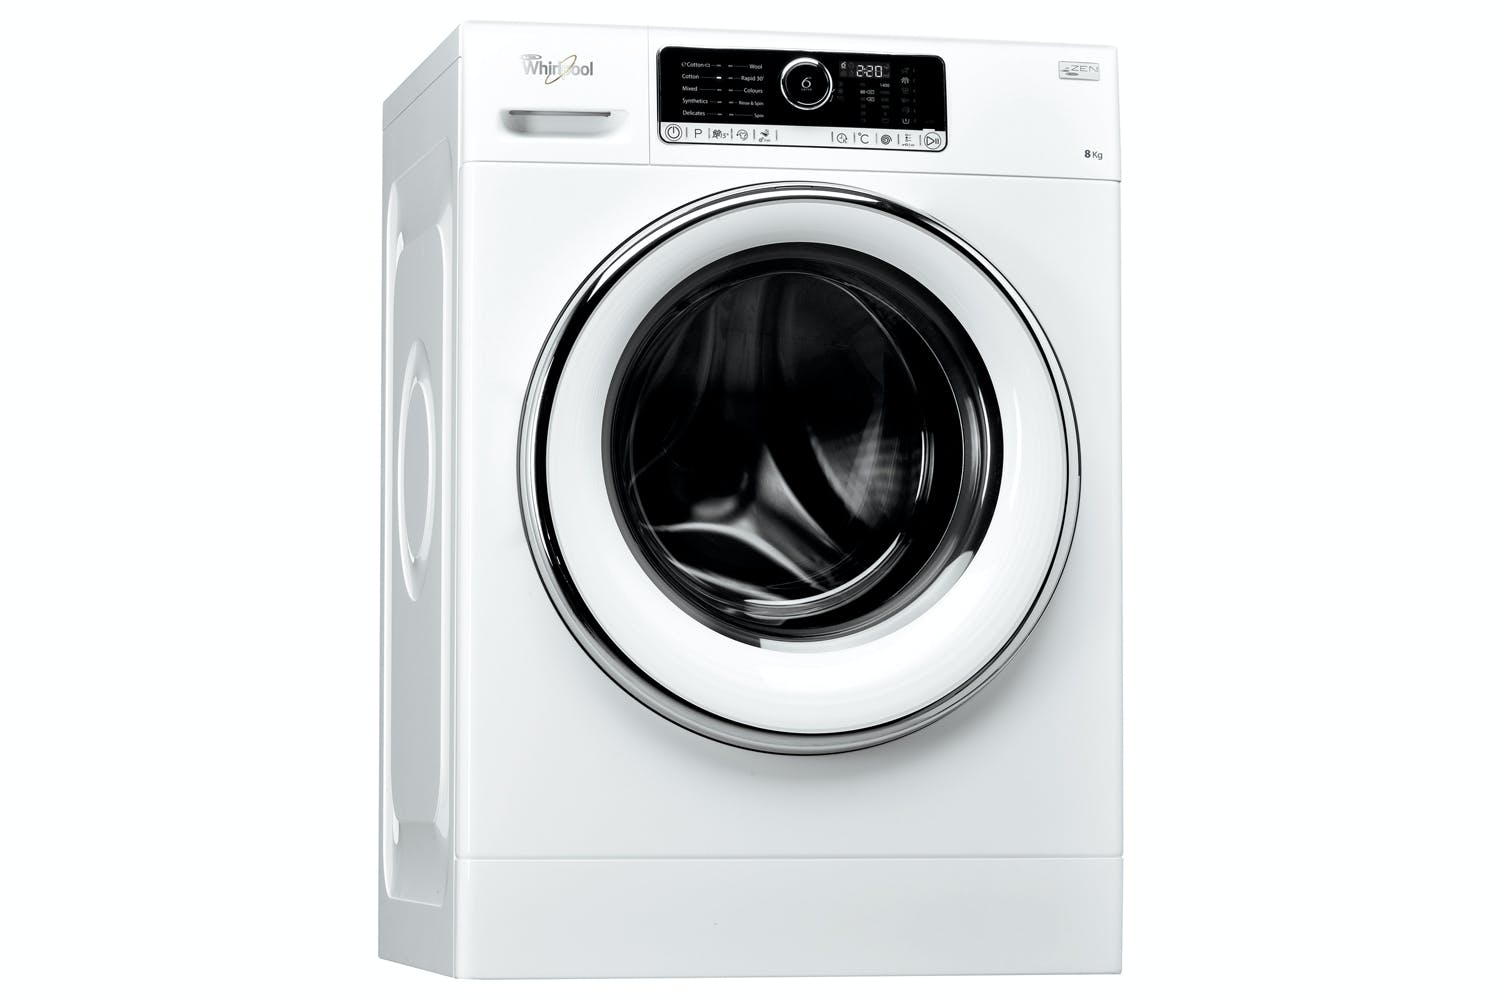 Whirlpool 8kg 6th Sense Washing Machine | FSCR80424